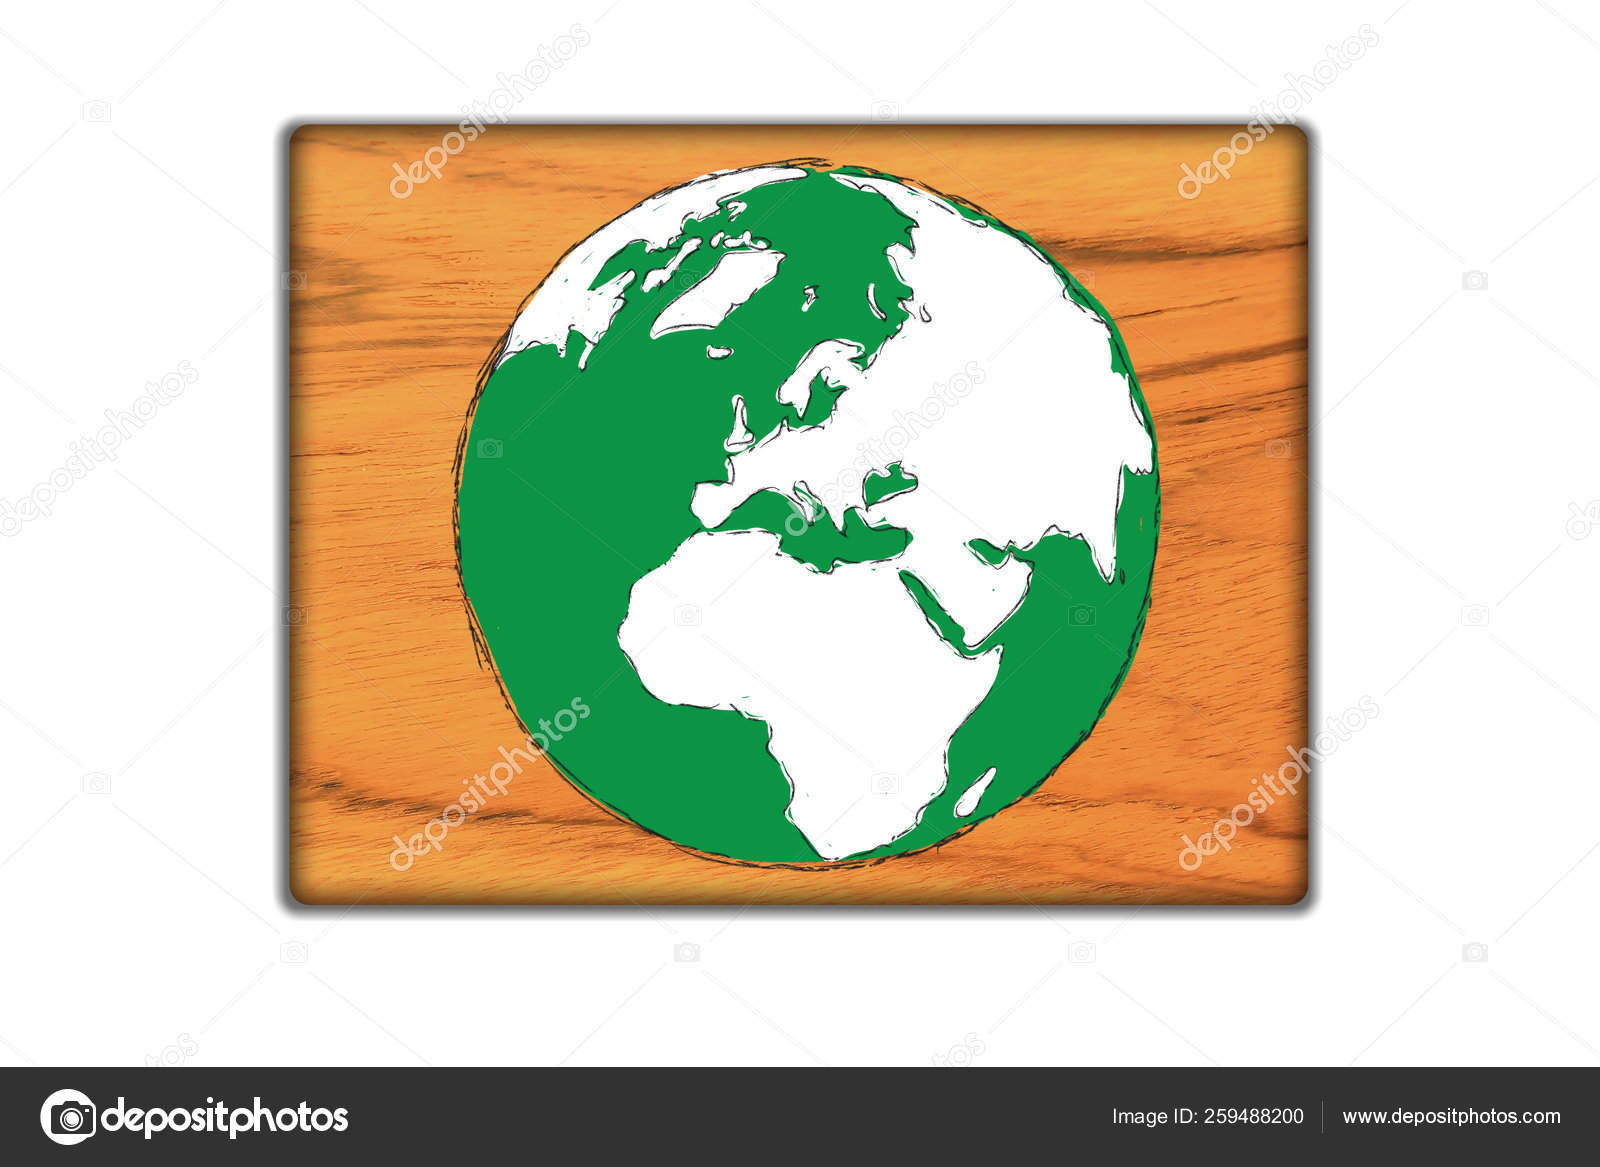 Draw Sign World Map Wood — Stock Photo © YAYImages #259488200